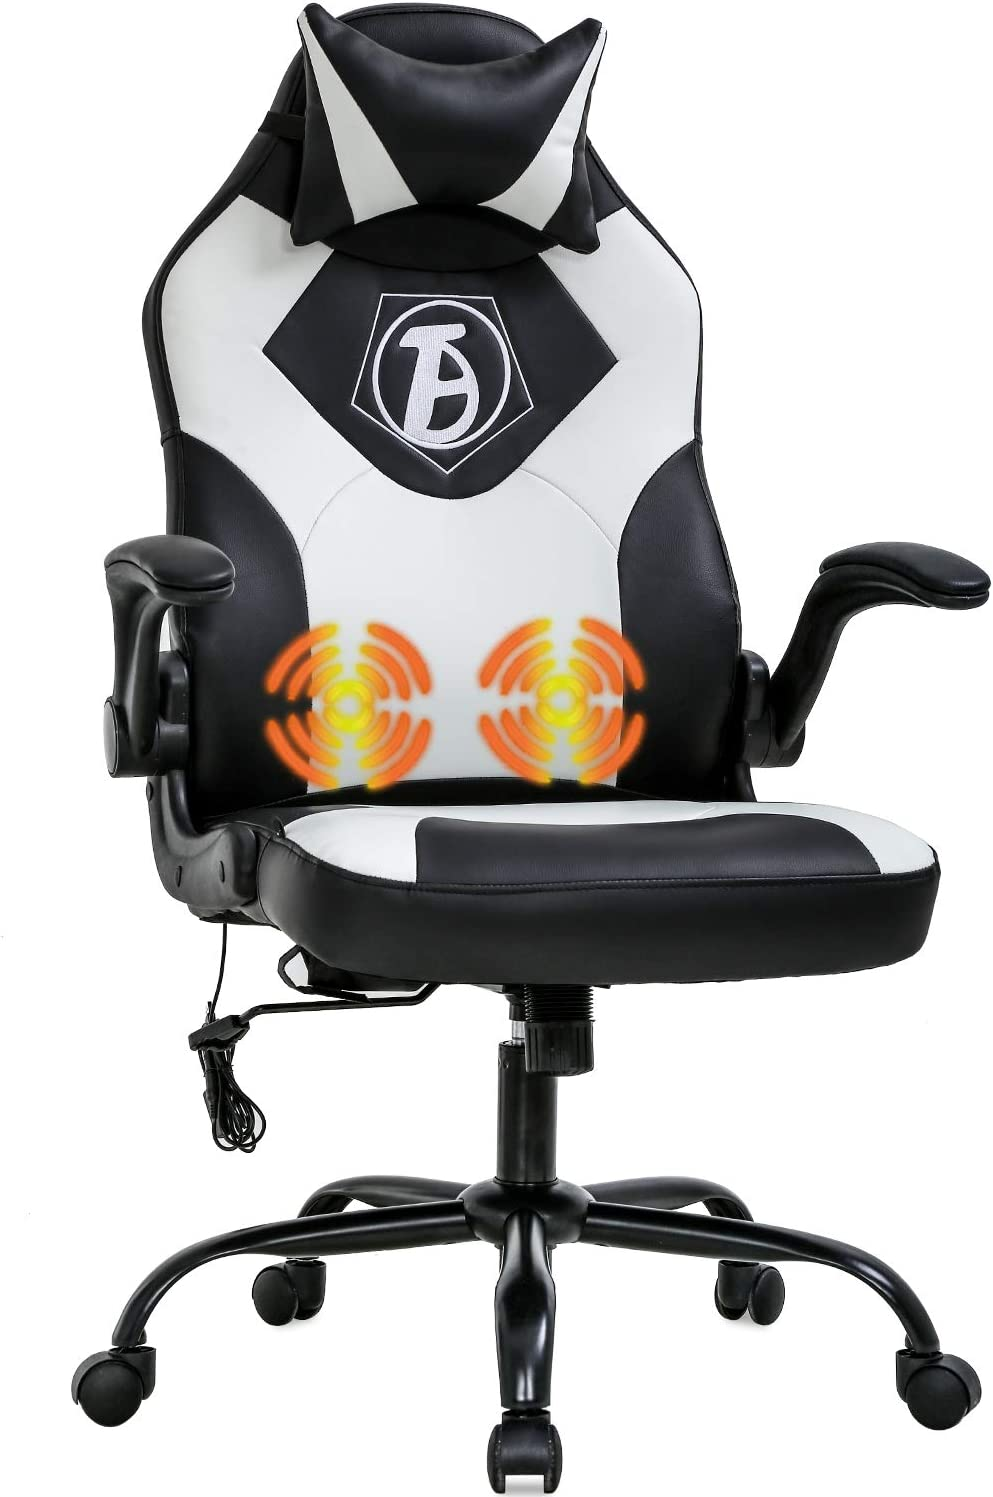 PC Gaming Chair Home Office Chair Ergonomic Desk Chair PU Leather Adjustable Computer Chair with Lumbar Support Headrest Armrest Task Rolling Swivel Massage Racing Chair for Women Adults(White)